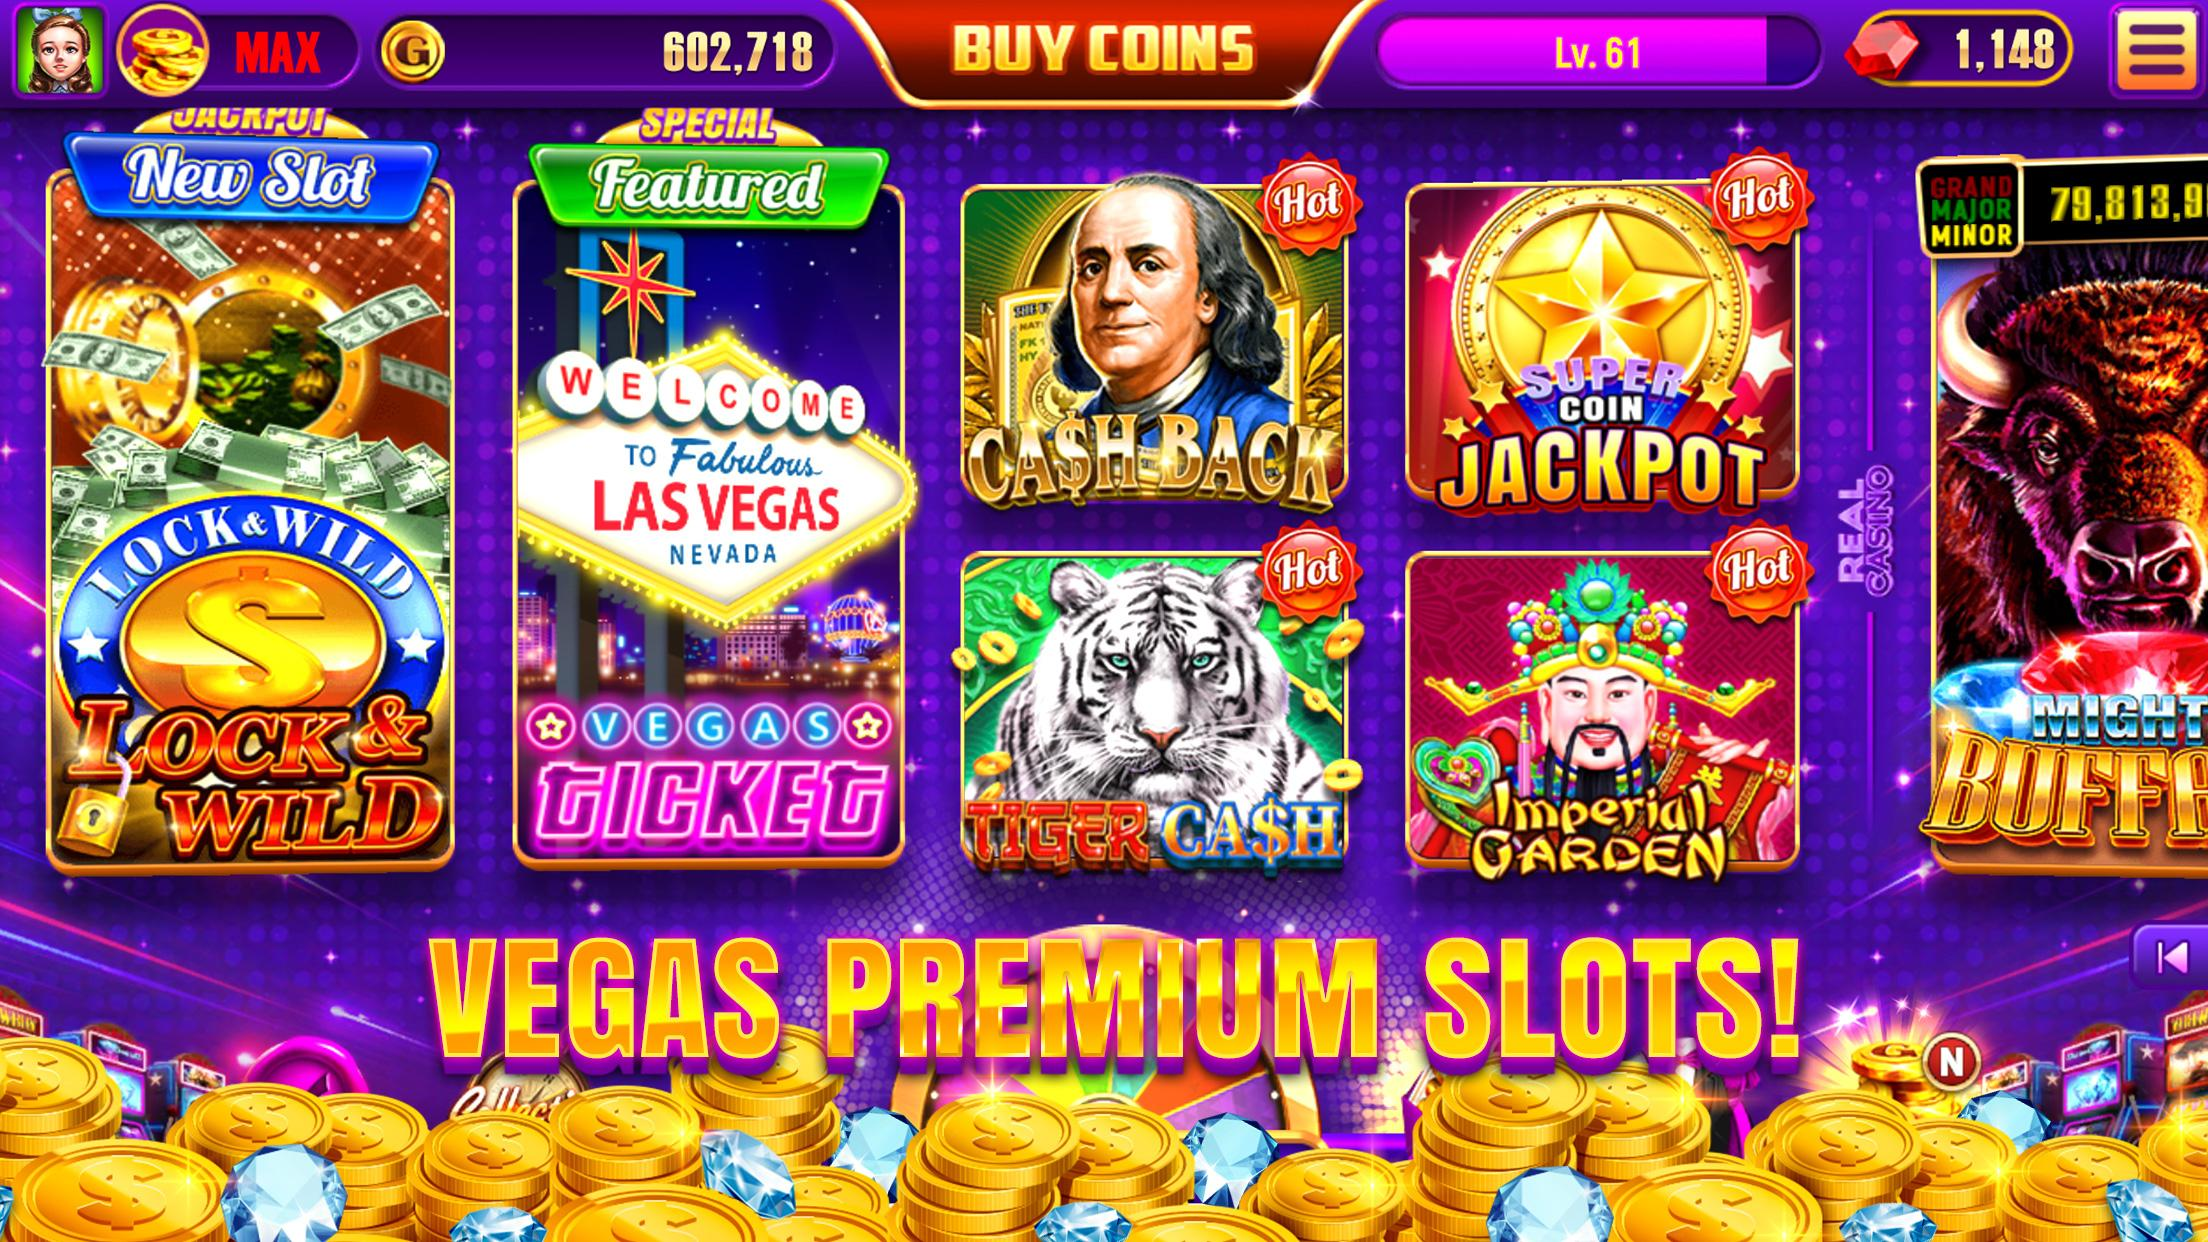 Real vegas online casino download will my playstation 3 play playstation 2 games